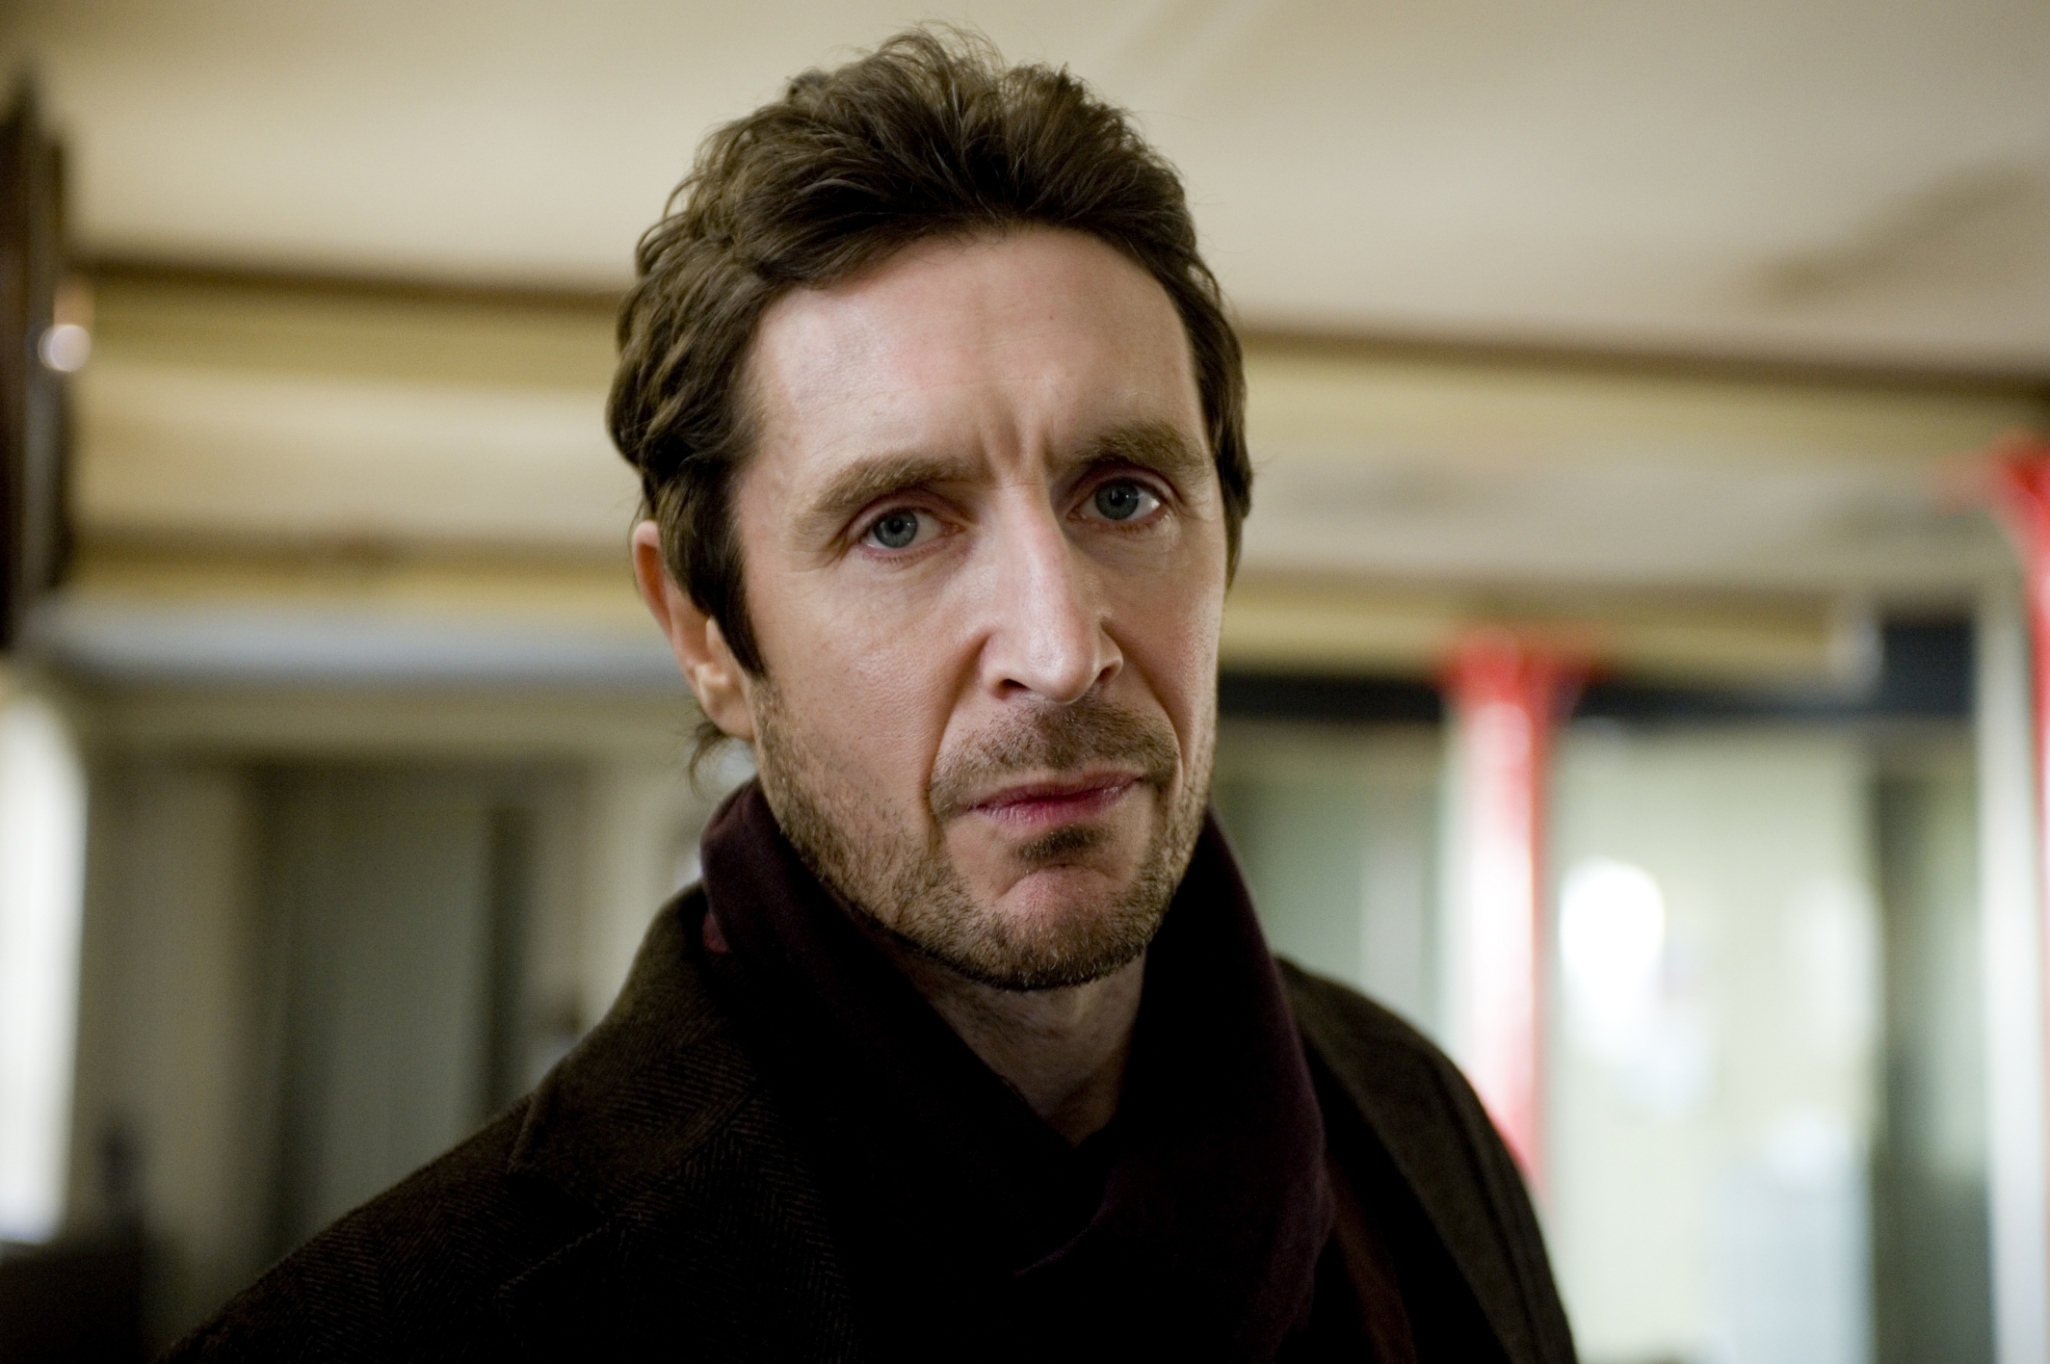 paul mcgann if i had youpaul mcgann twitter, paul mcgann tumblr, paul mcgann regenerates, paul mcgann if i had you, paul mcgann address, paul mcgann theatre, paul mcgann wife, paul mcgann films, paul mcgann alien 3, paul mcgann fanfiction, paul mcgann fan mail, paul mcgann filmography, paul mcgann photos, paul mcgann, paul mcgann doctor who, paul mcgann in luther, paul mcgann doctor who movie, paul mcgann wiki, paul mcgann interview, paul mcgann 2015